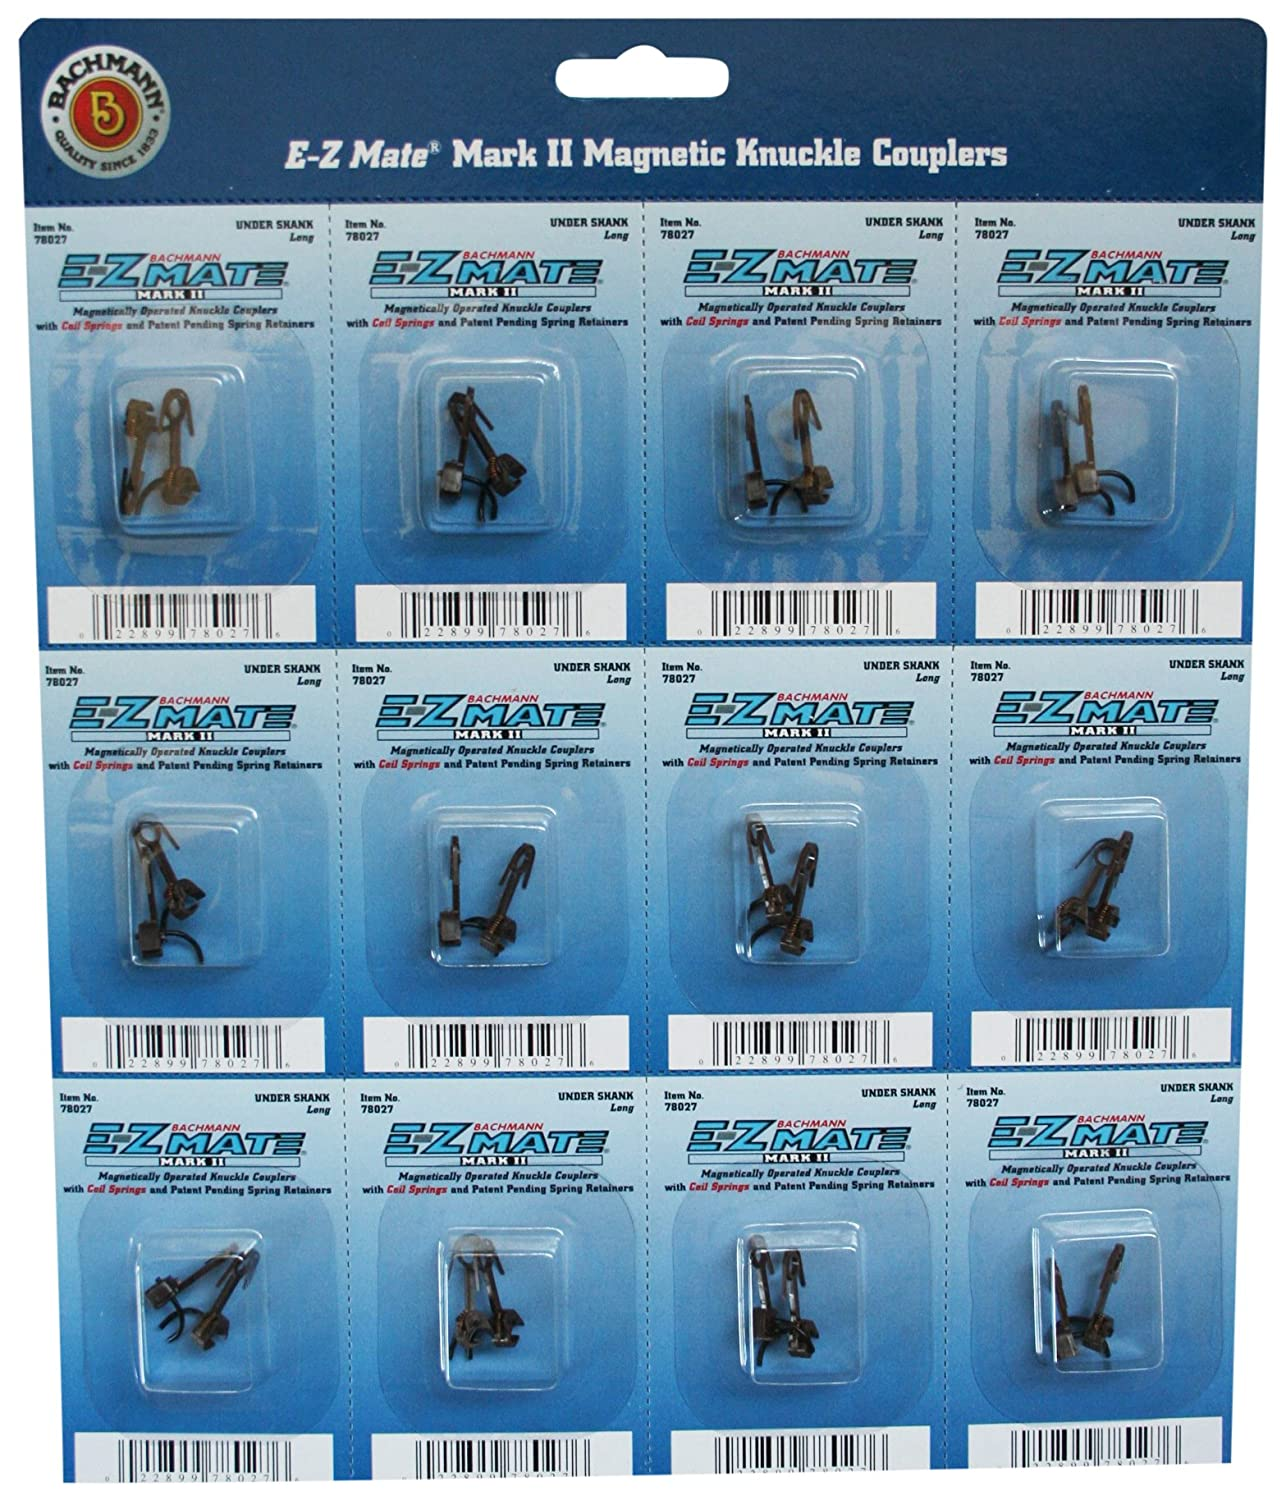 - HO Scale Bachmann Industries Inc Z Mate Mark II Magnetic Knuckle Couplers with Metal Coil Spring Under Shank 12 Coupler pairs per card Long 78027 Bachmann Trains E